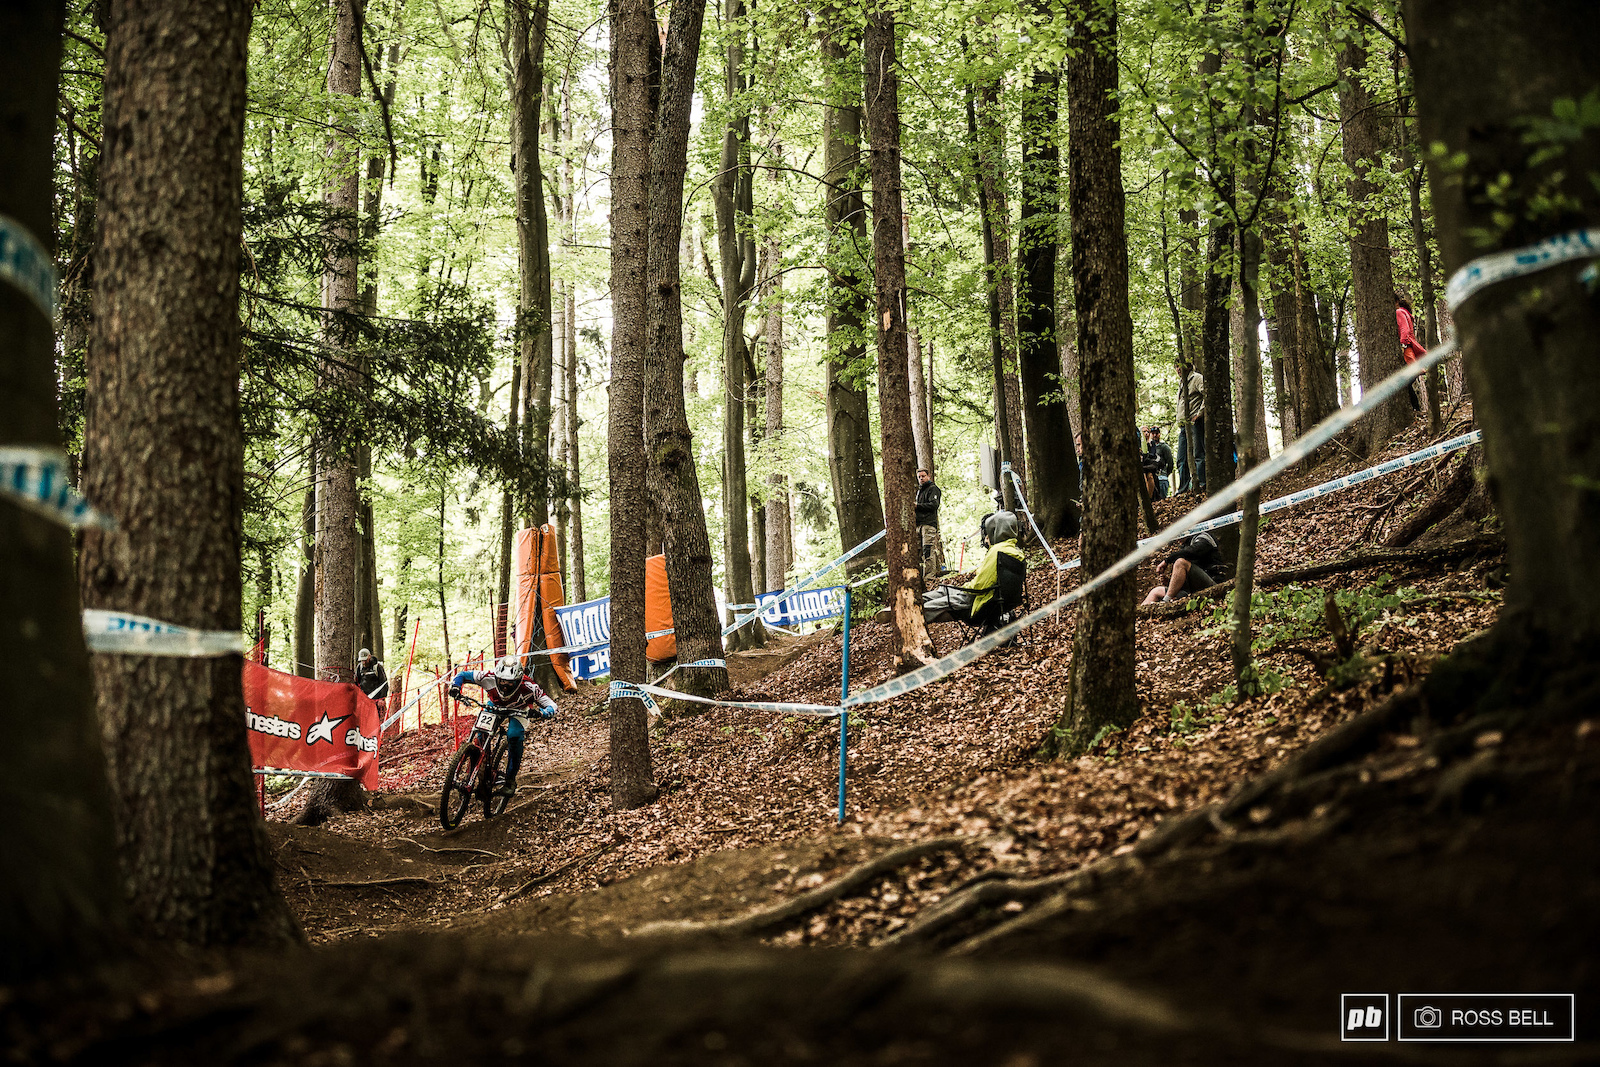 The savage Maribor track is quite the contrast to the quaint woodland that it runs through as Dakotah Norton discovers.